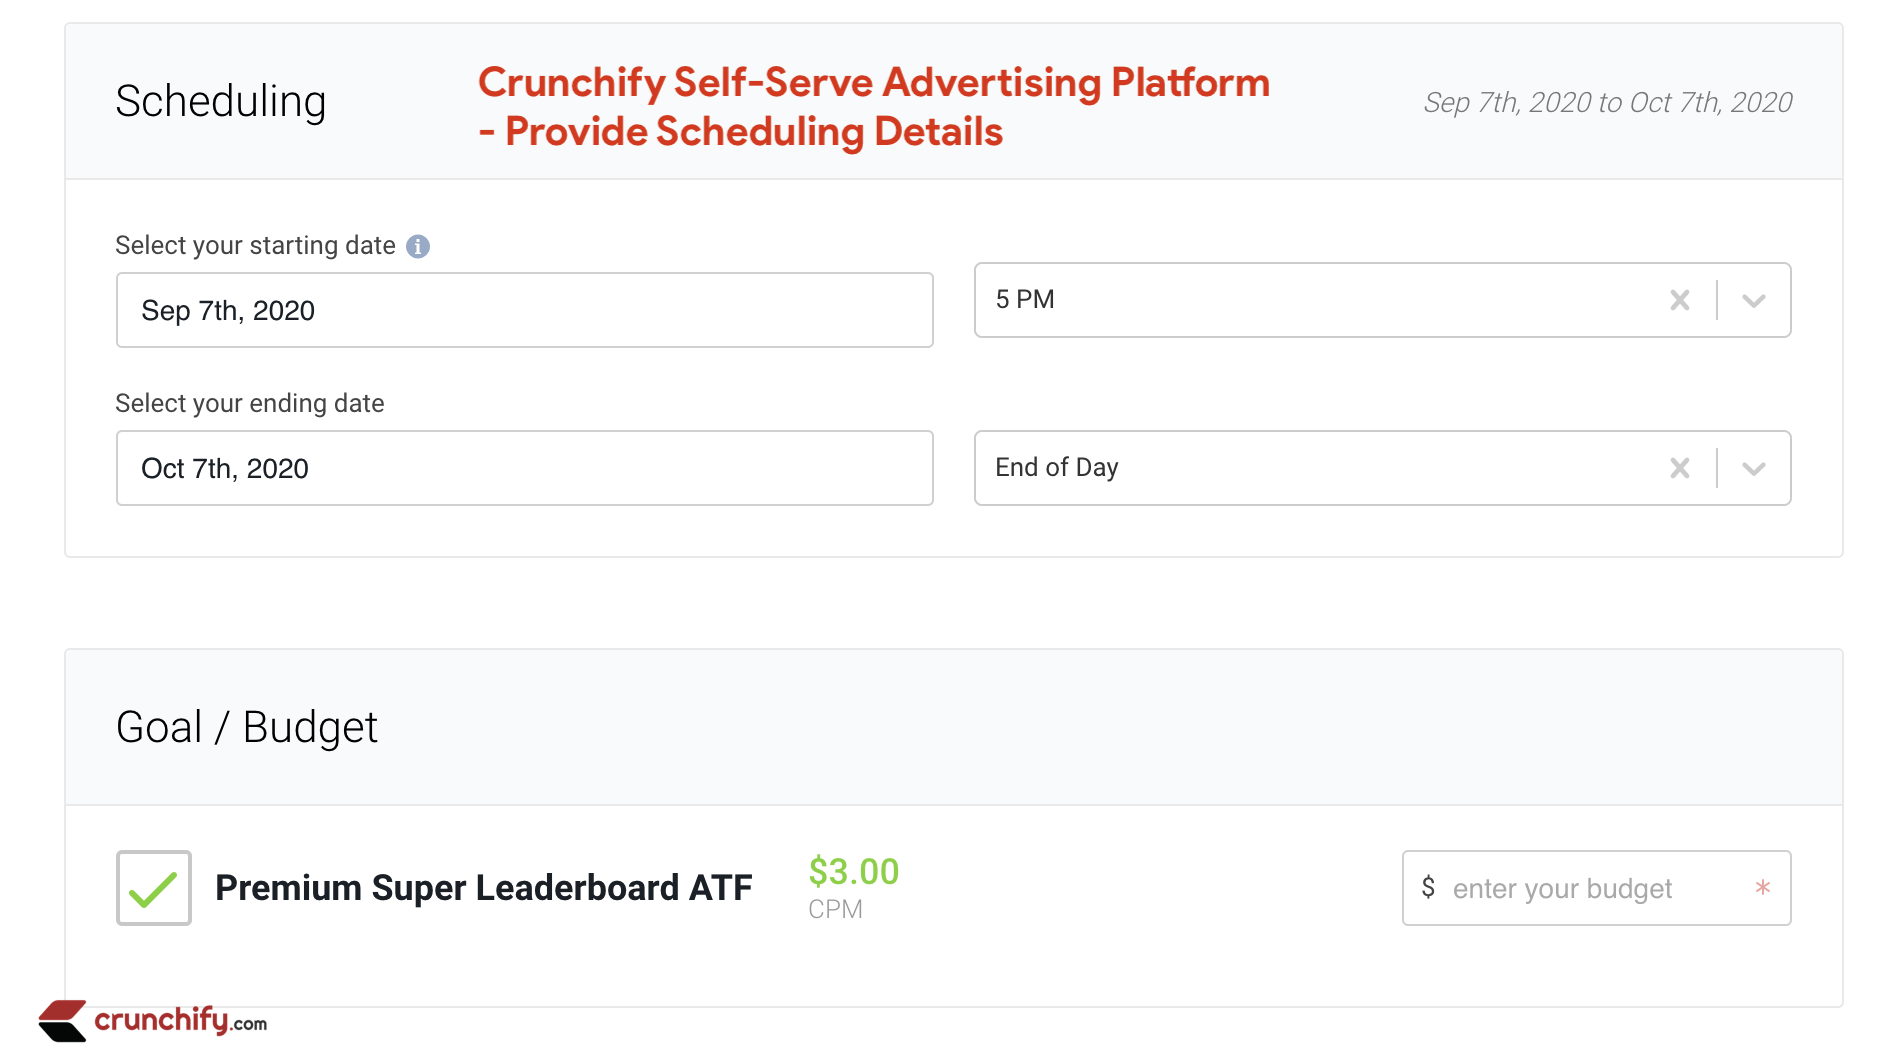 Crunchify Self-Serve Advertising - Scheduling and Goal Budget Option